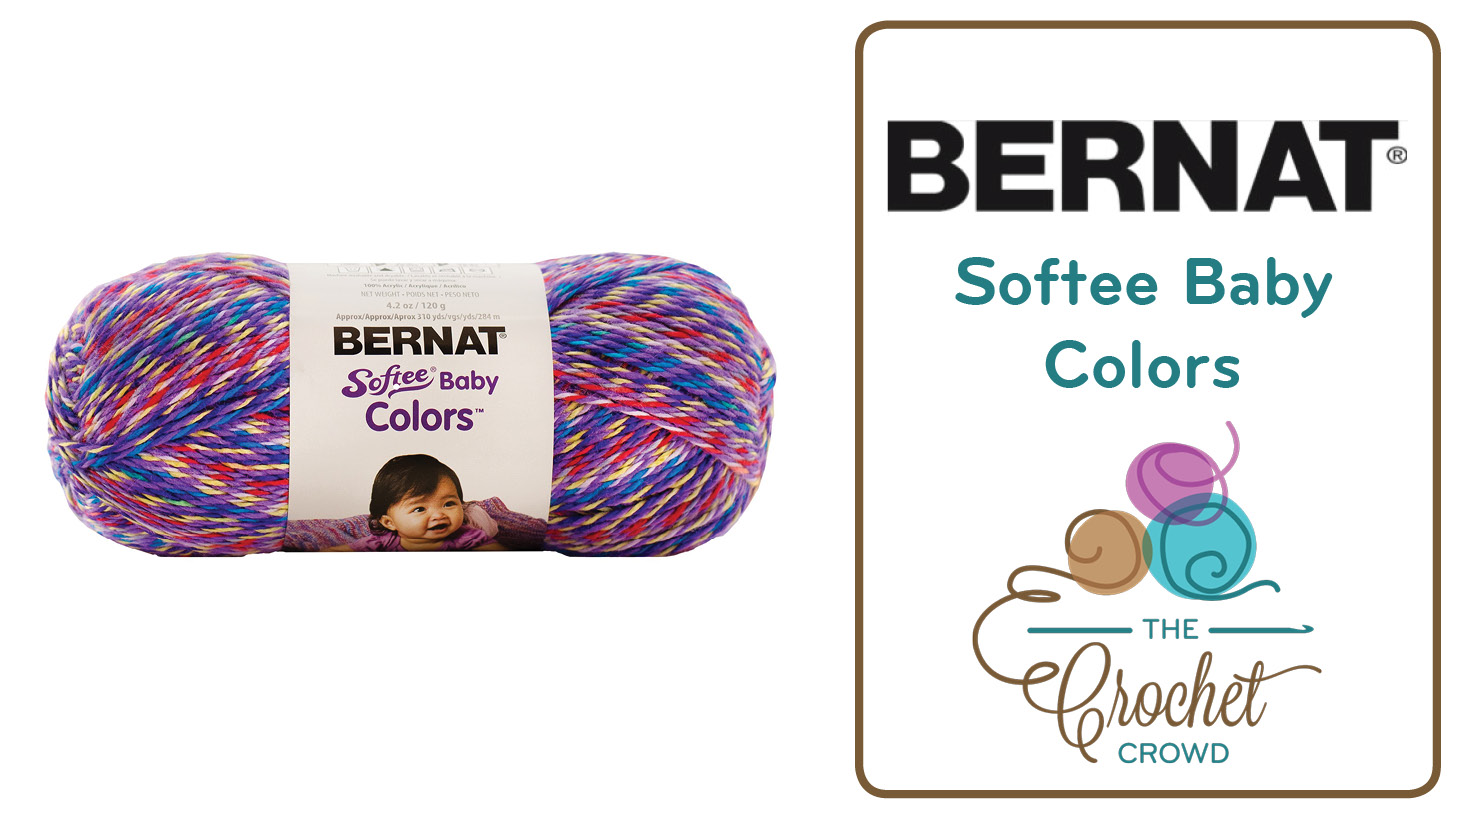 What To Do With Bernat Softee Baby Colors Yarn - The Crochet Crowd®